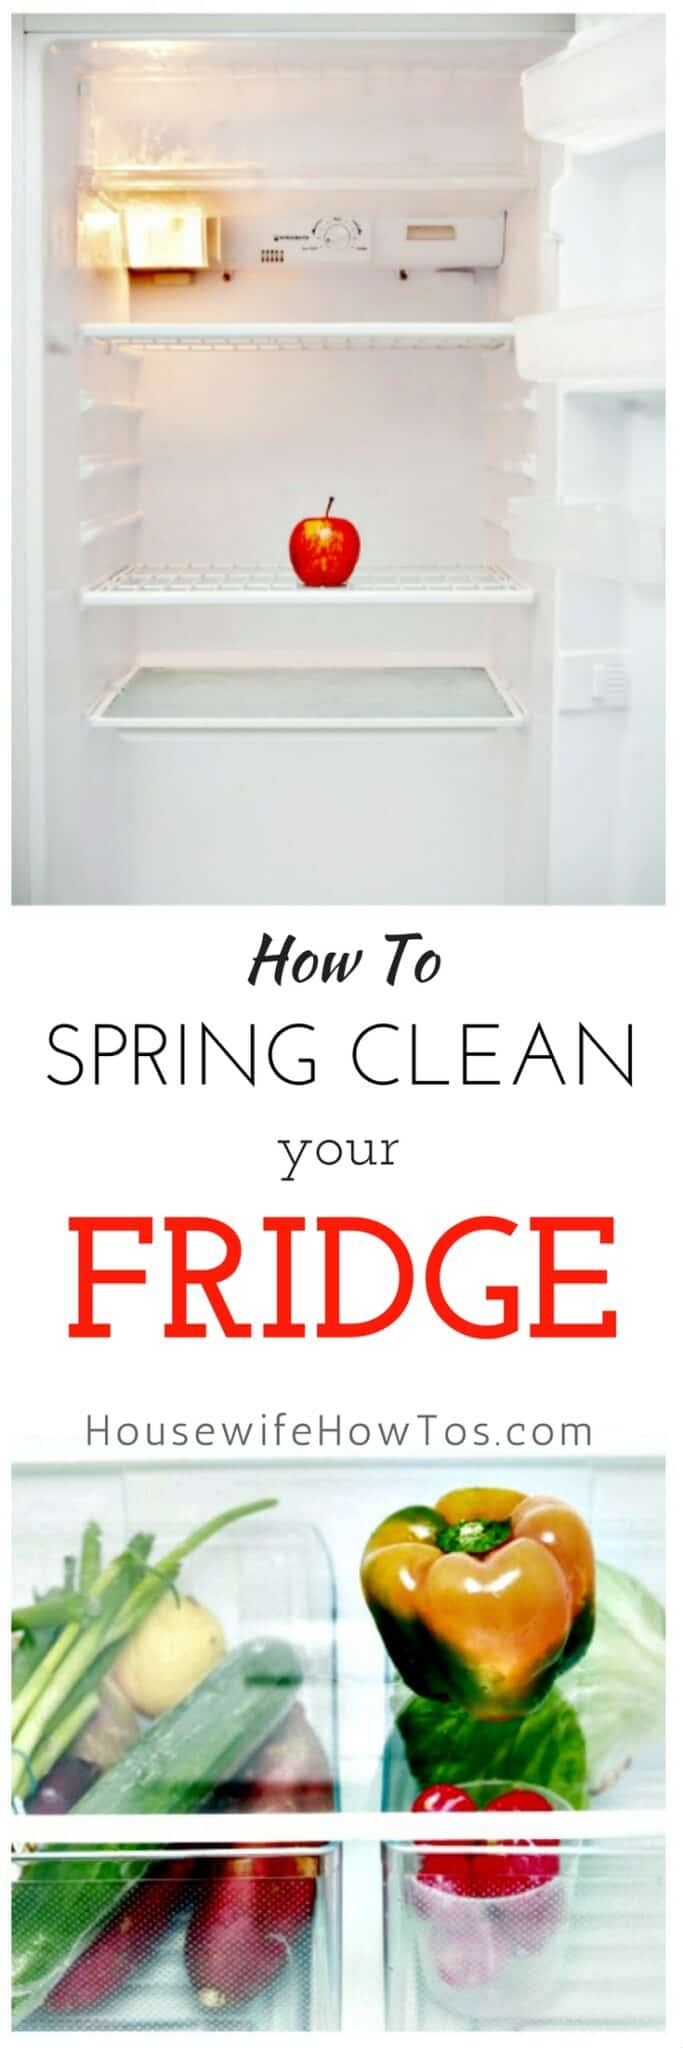 A dirty refrigerator costs you money through increased food spoilage and additional energy use. Here's how to clean yours so it looks and works like new. #springcleaning #cleaning